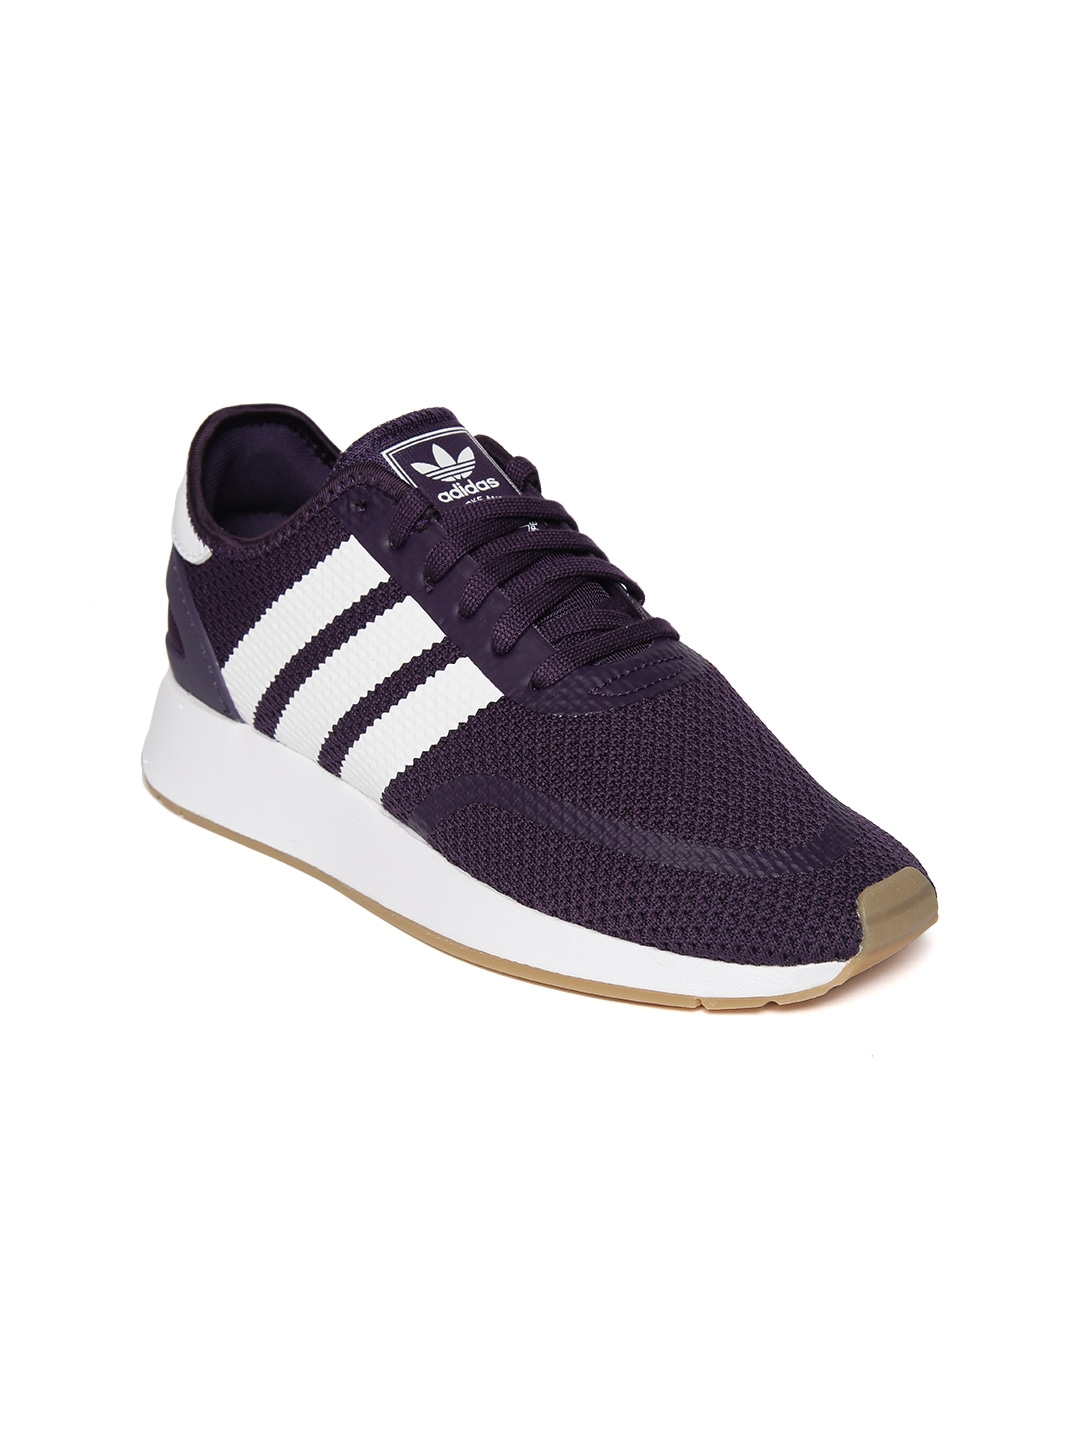 c405d755a6d77 Women s Adidas Shoes - Buy Adidas Shoes for Women Online in India